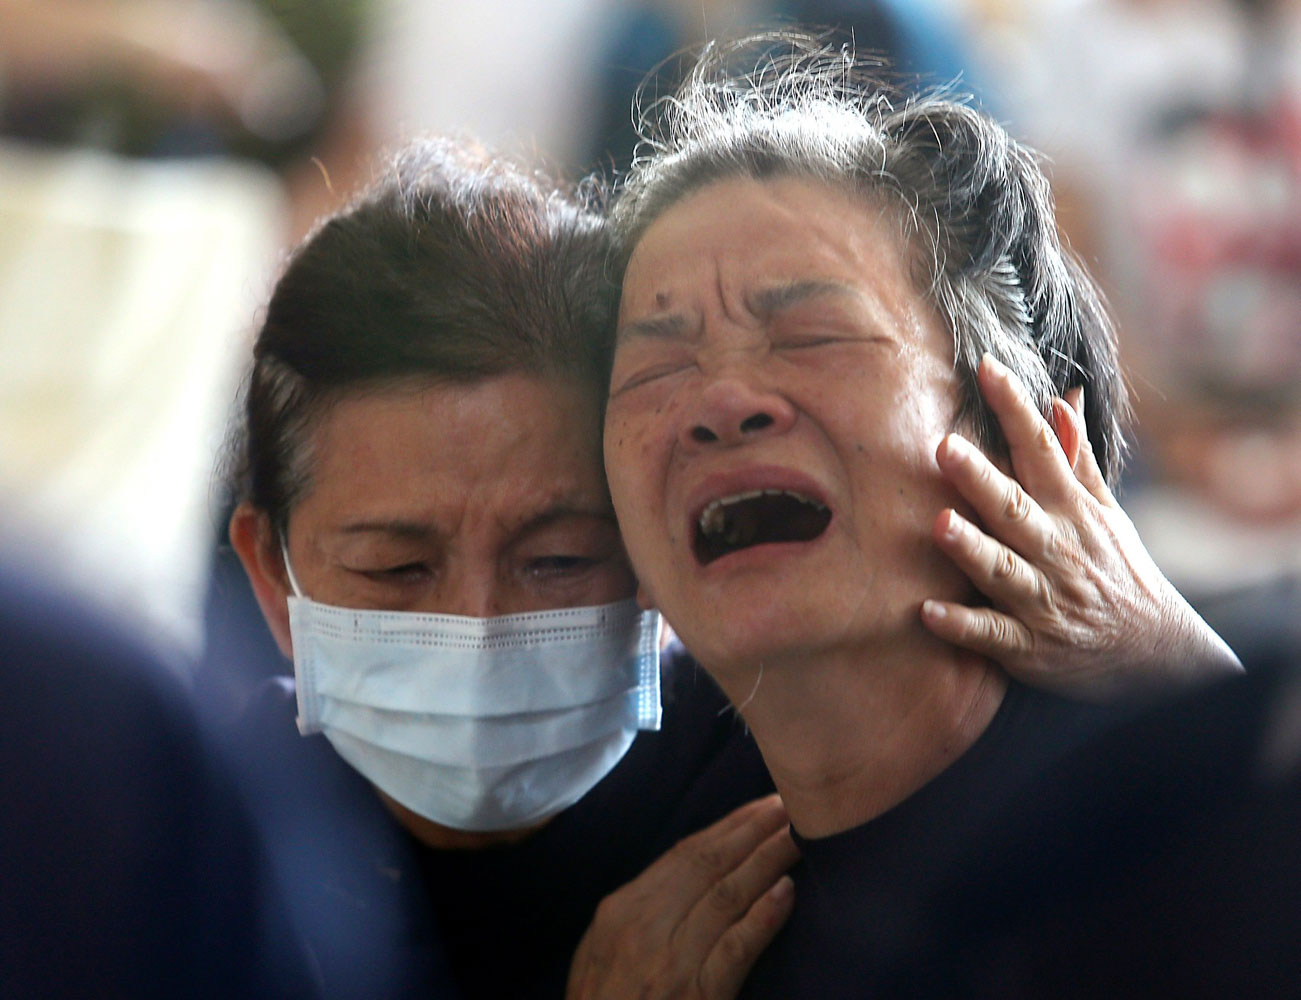 Relatives of the victims cry after an explosion in Kaohsiung, southern Taiwan on Aug. 1, 2014.